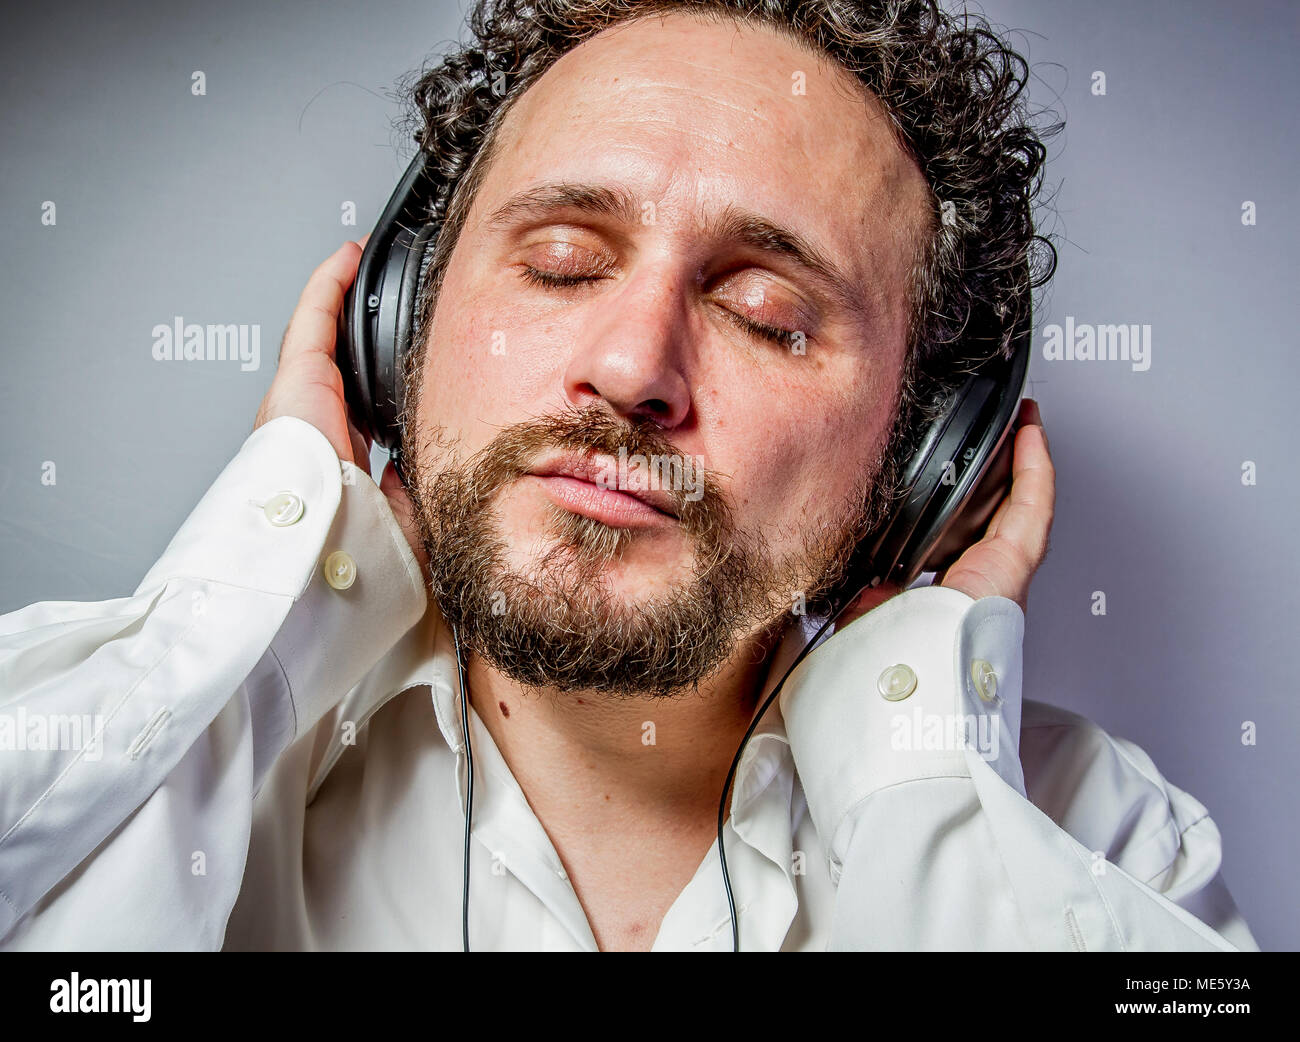 classical music, man with intense expression, white shirt Stock